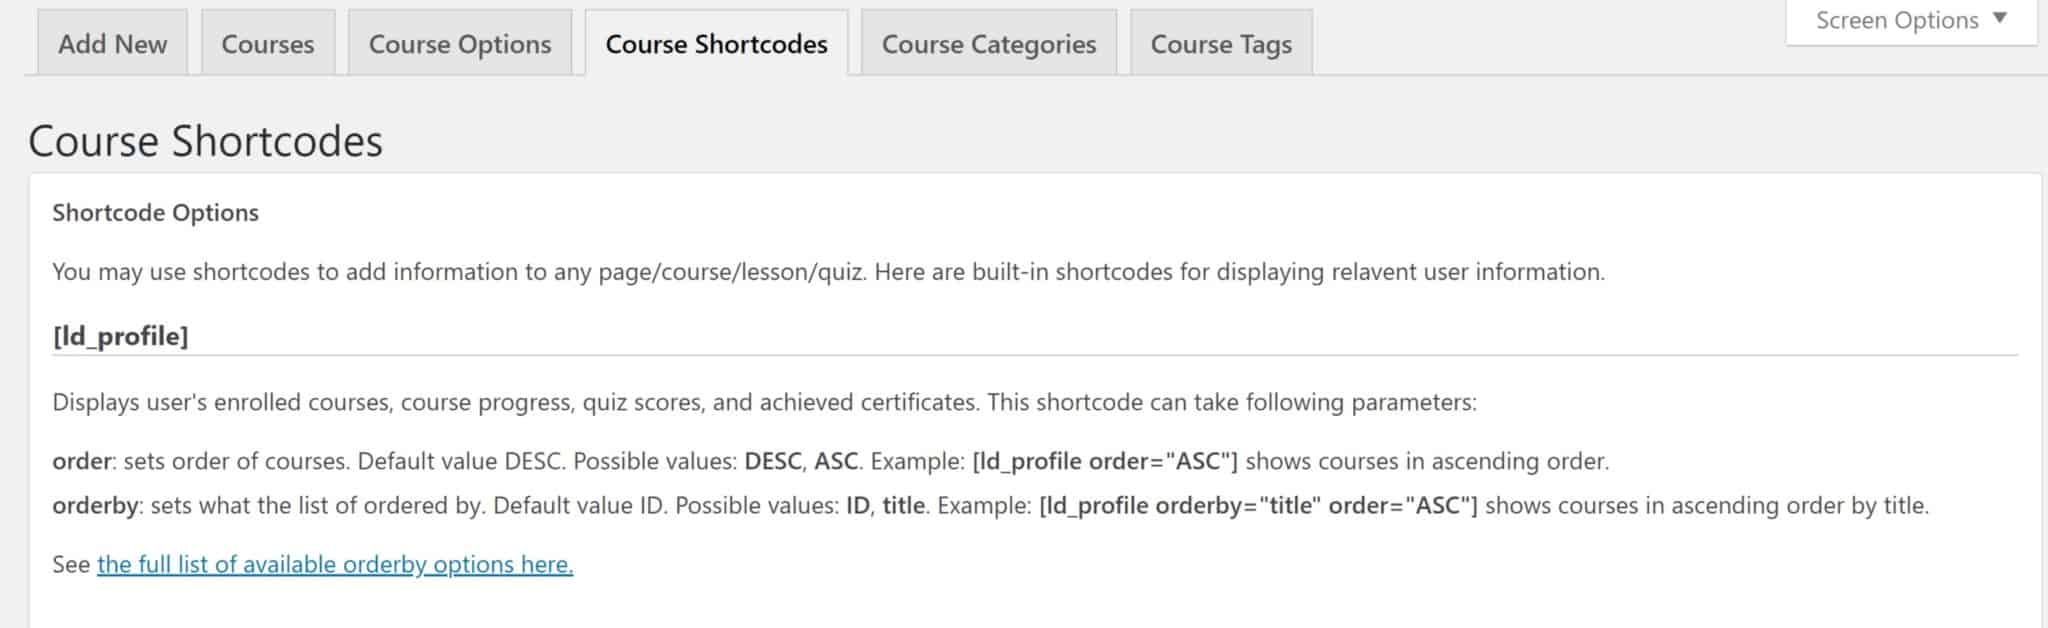 Course Shortcodes Tab